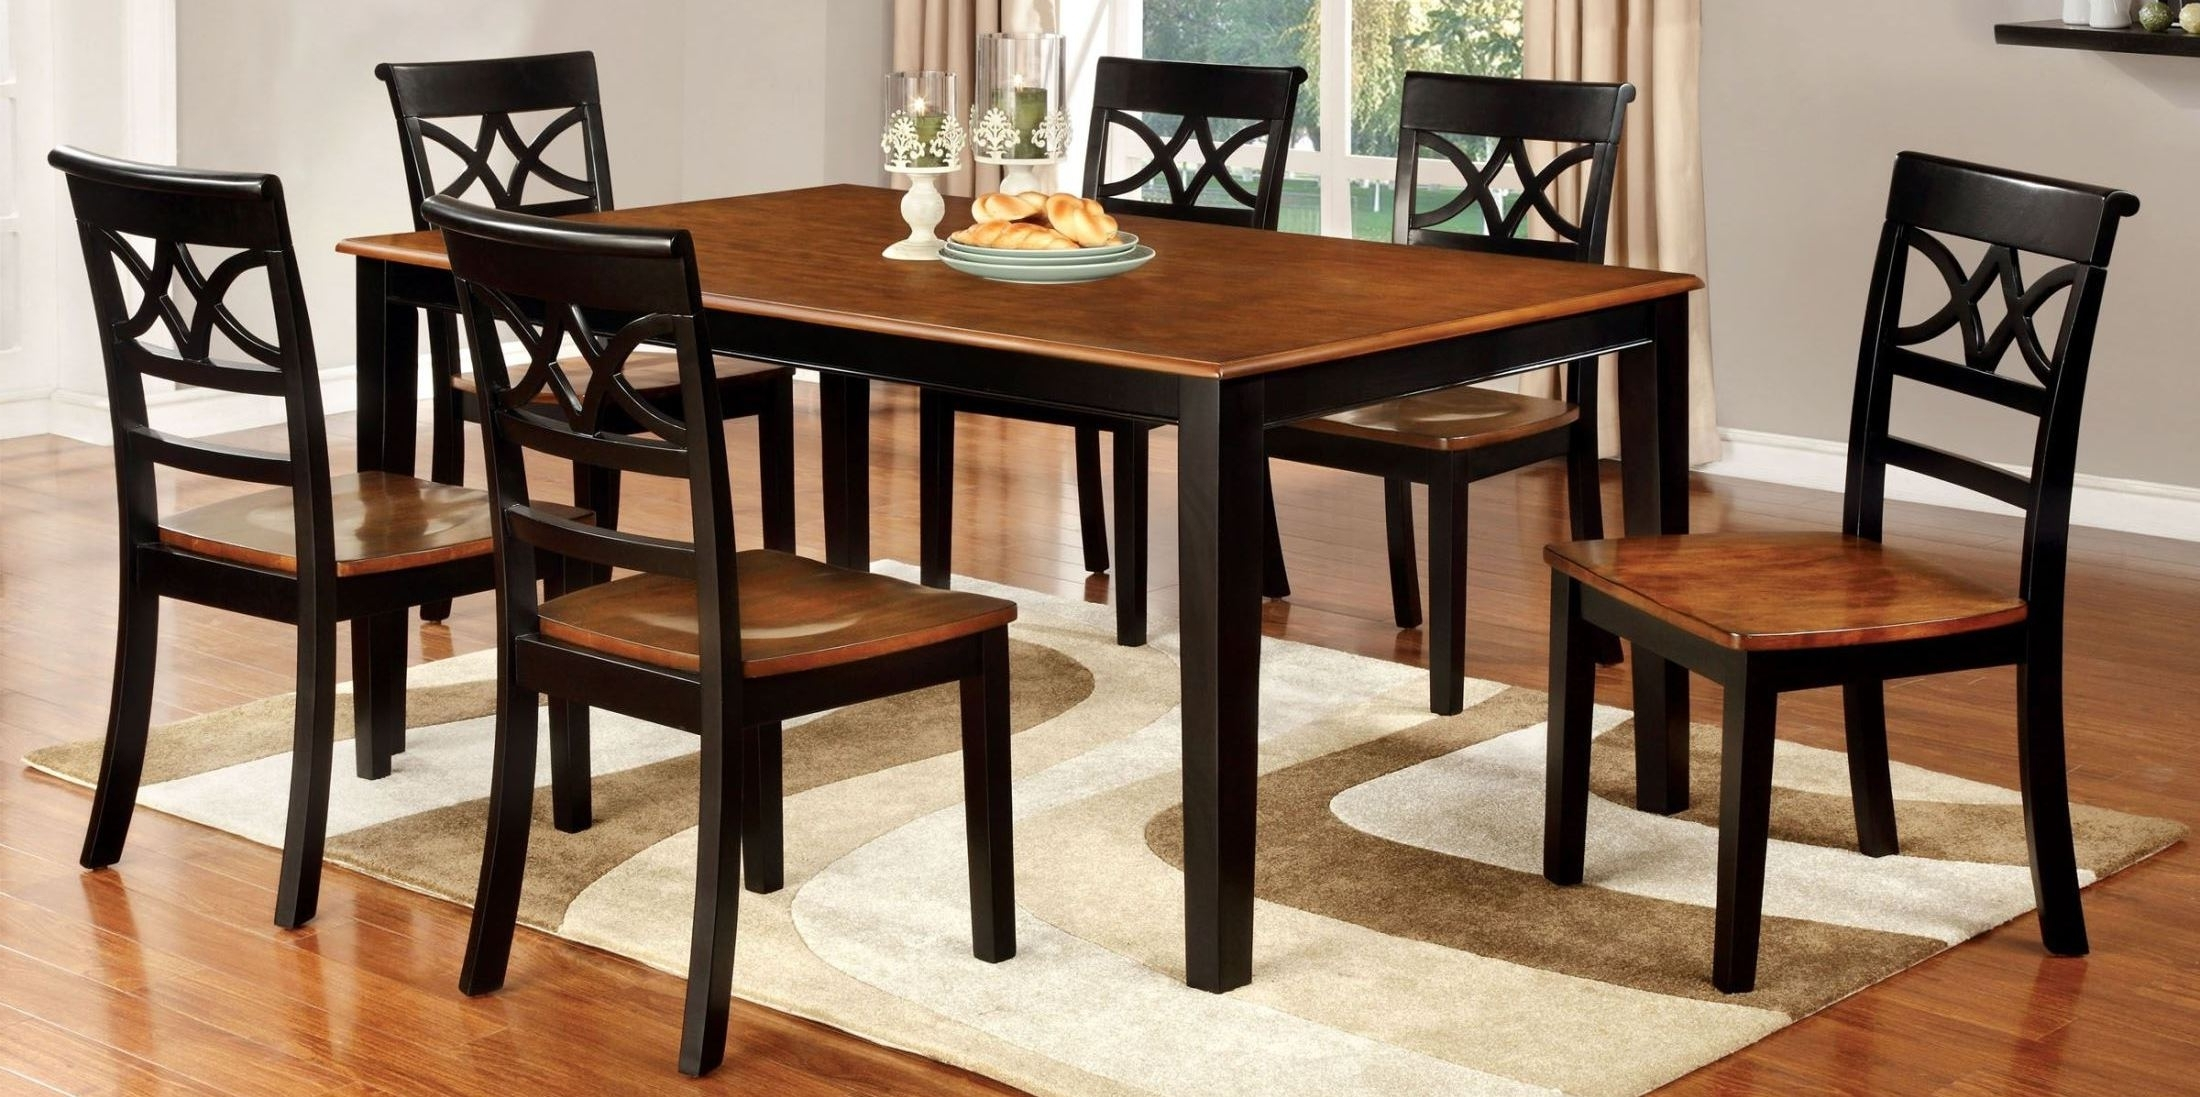 Craftsman 7 Piece Rectangle Extension Dining Sets With Arm & Side Chairs Intended For Well Known Furniture Of America Torrington Black And Cherry Rectangular (View 15 of 25)